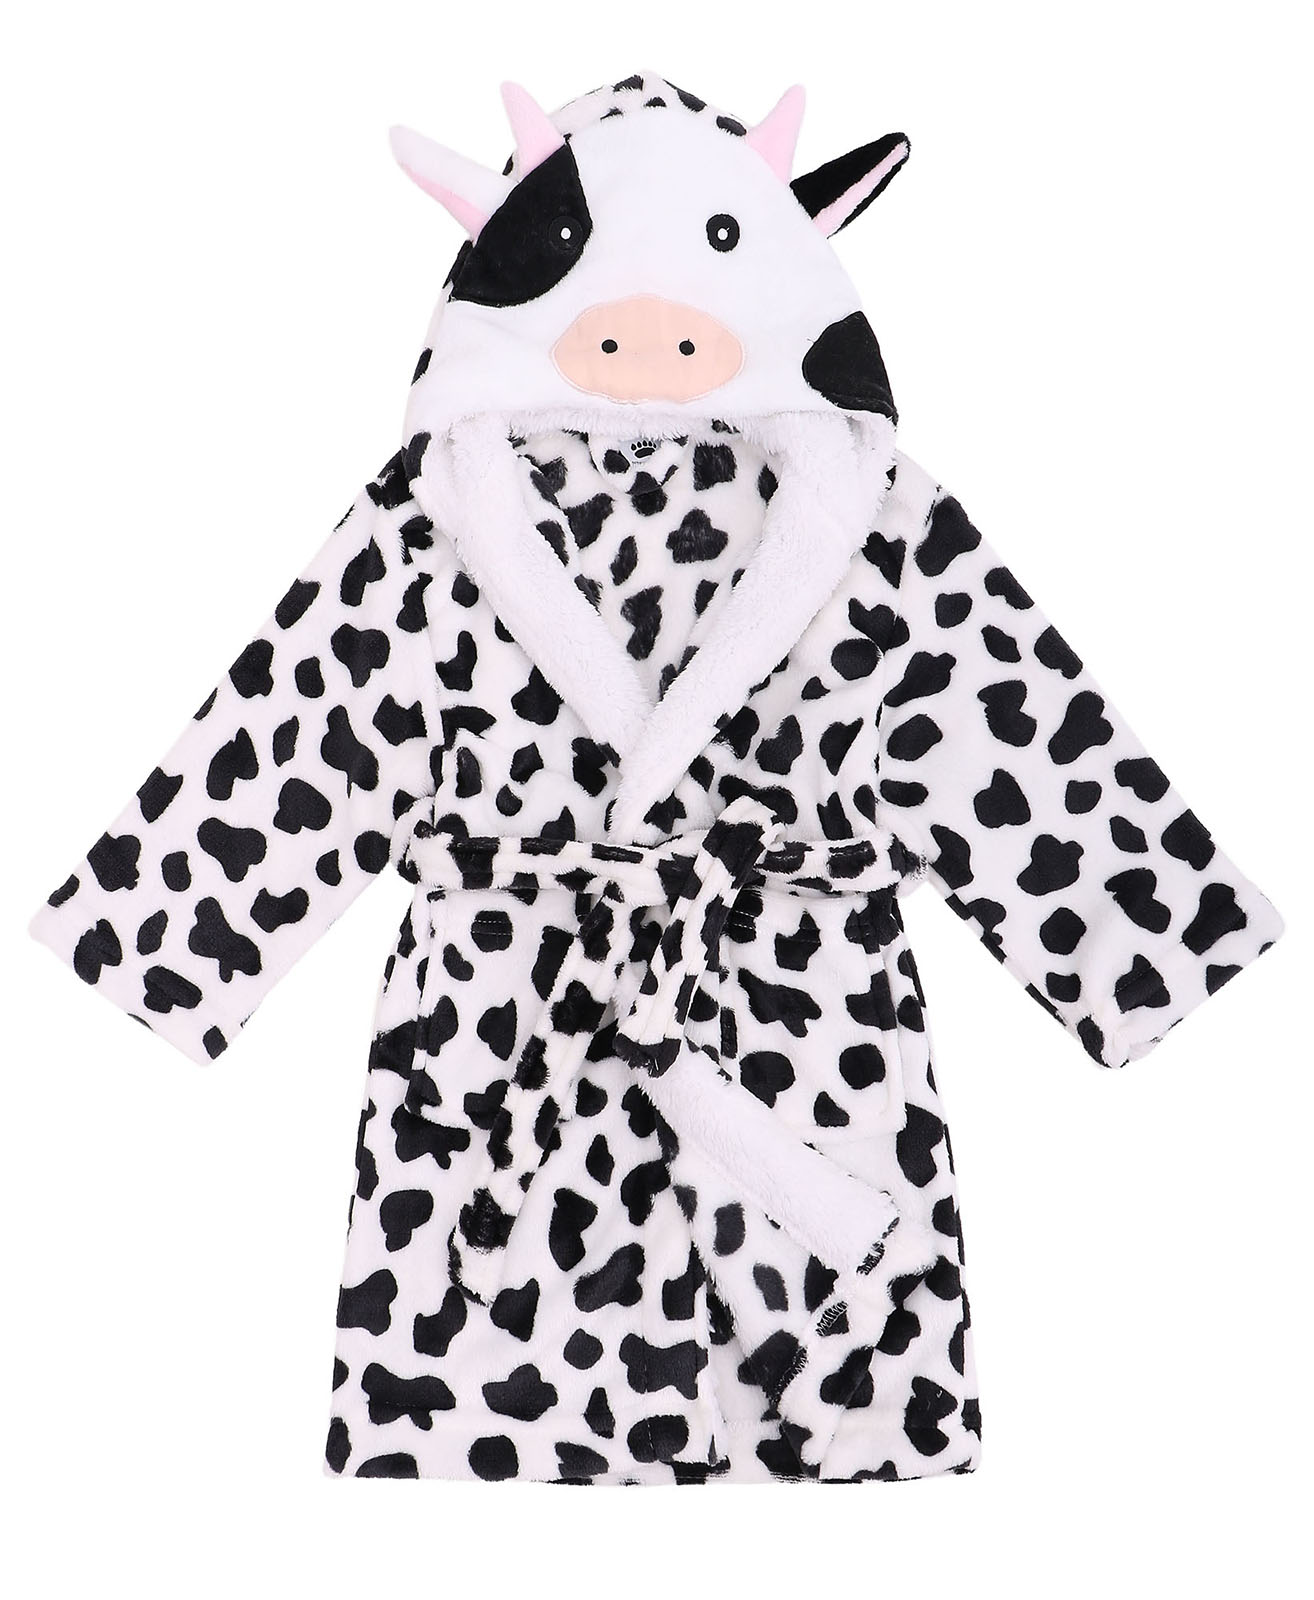 Boys Robe Zoo Crew Fuzzy Sherpa Lined Hooded Animal Bathrobe,Cow,M(4-6 Years)